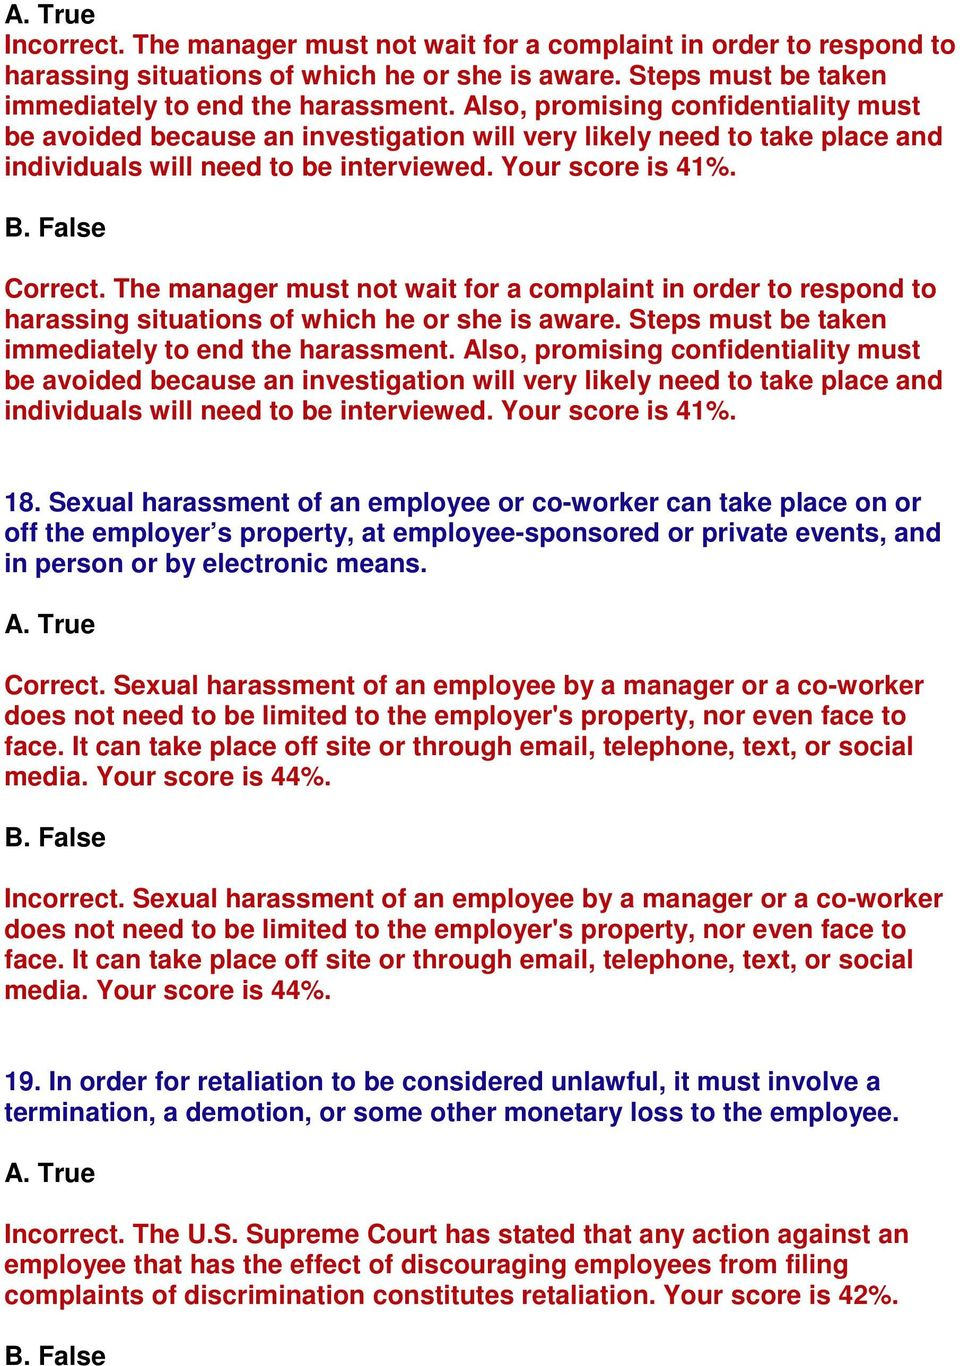 The manager must not wait for a complaint in order to respond to harassing situations of which he or she is aware. Steps must be taken immediately to end the harassment.